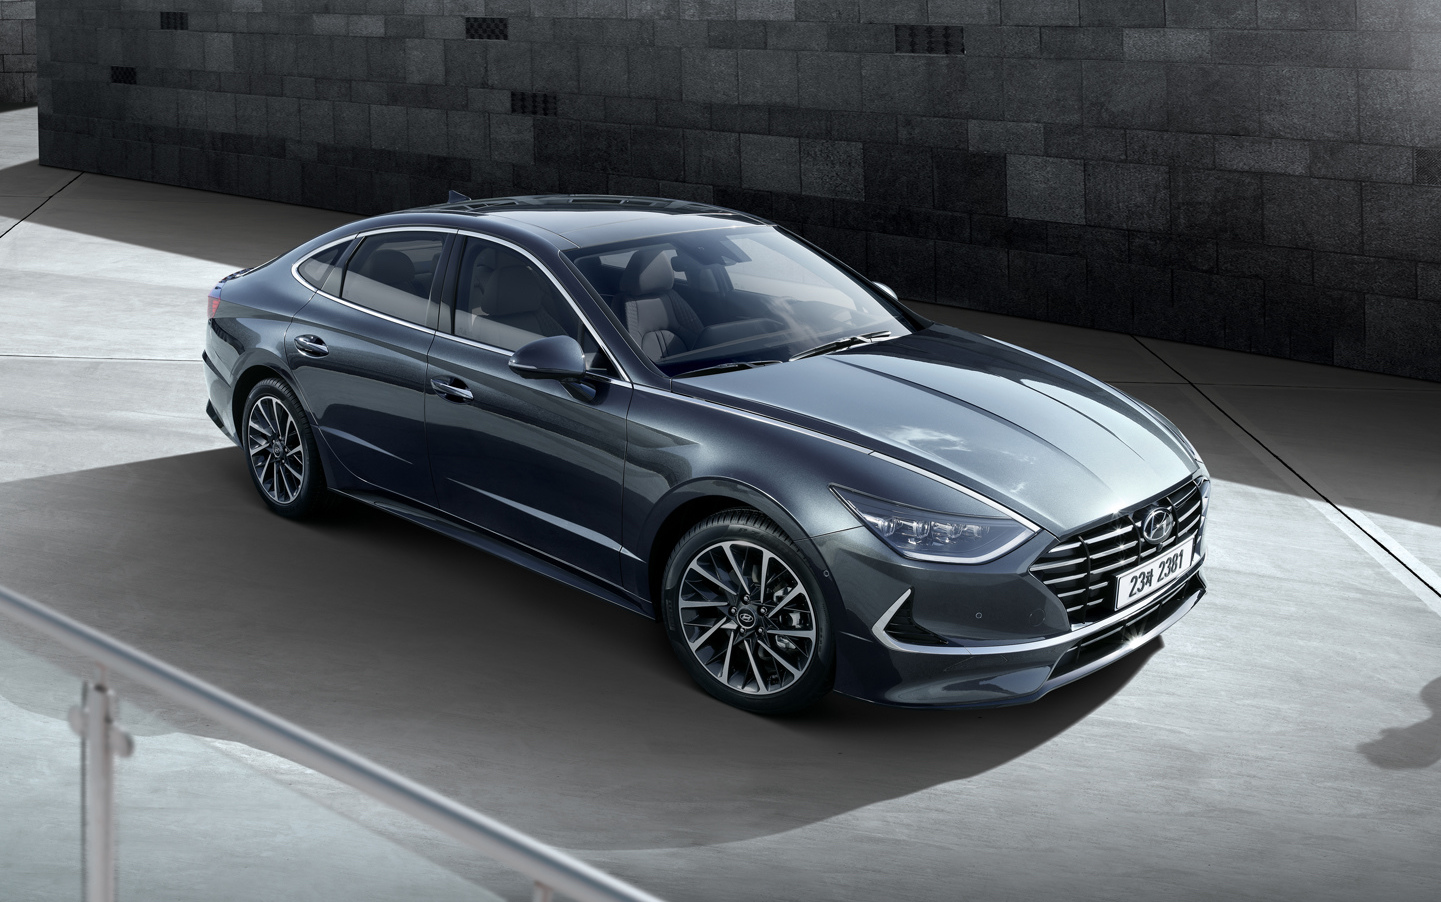 Hyundai Sonata Luxurious Coupe Revealed with Striking Design